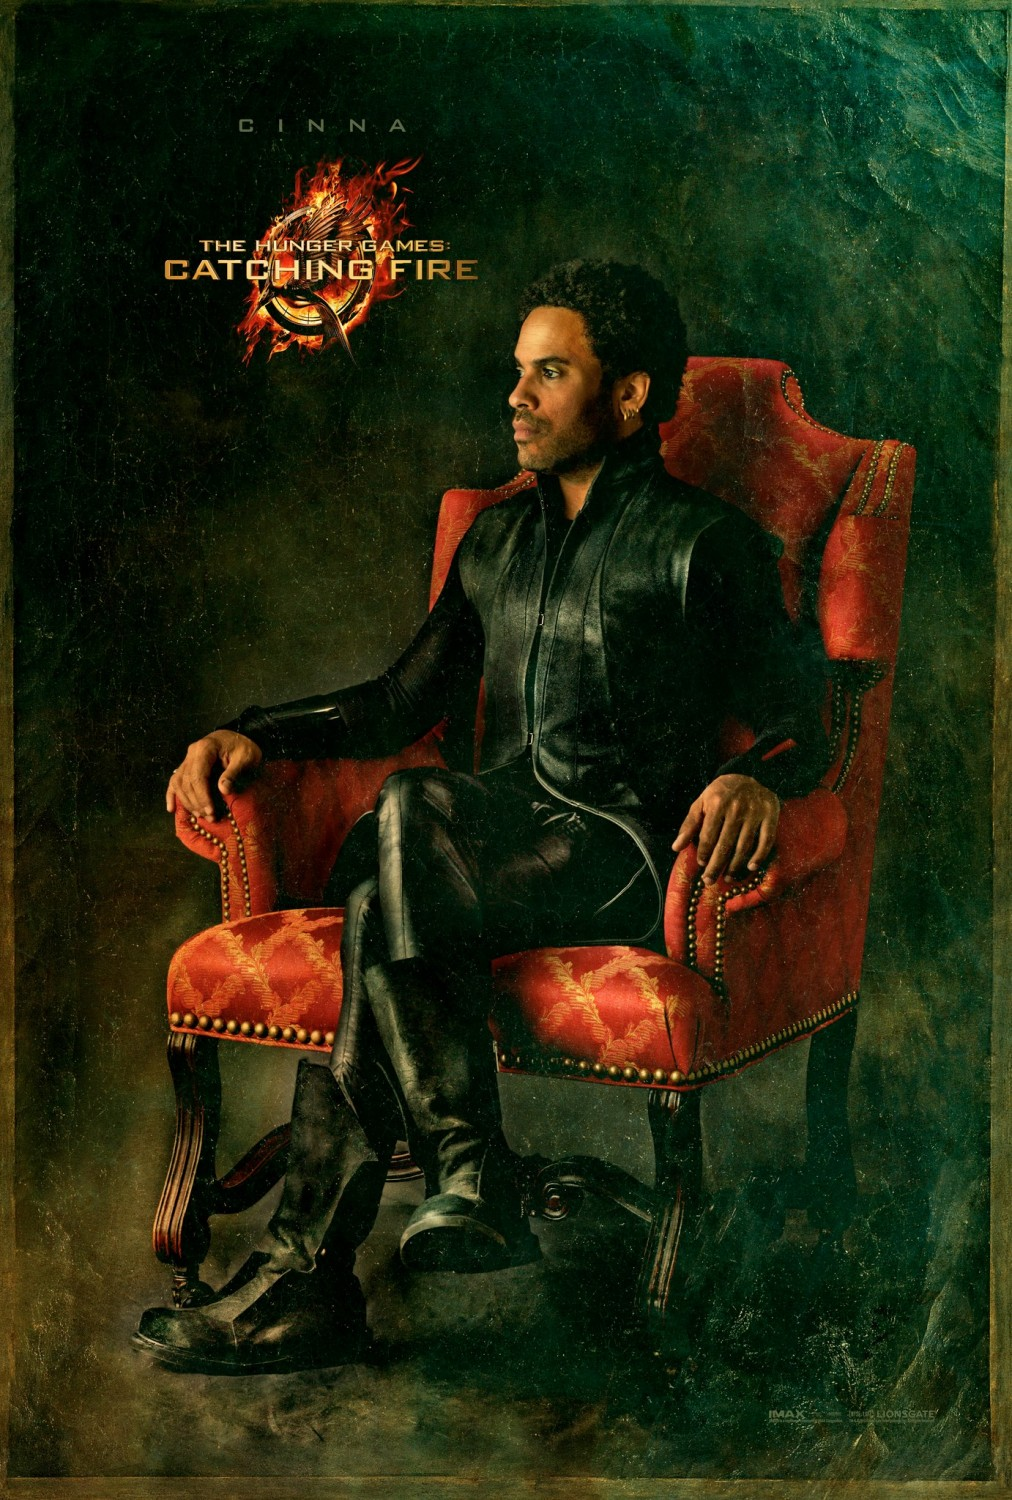 The Hunger Games Catching Fire - Poster - 007 - Cinna